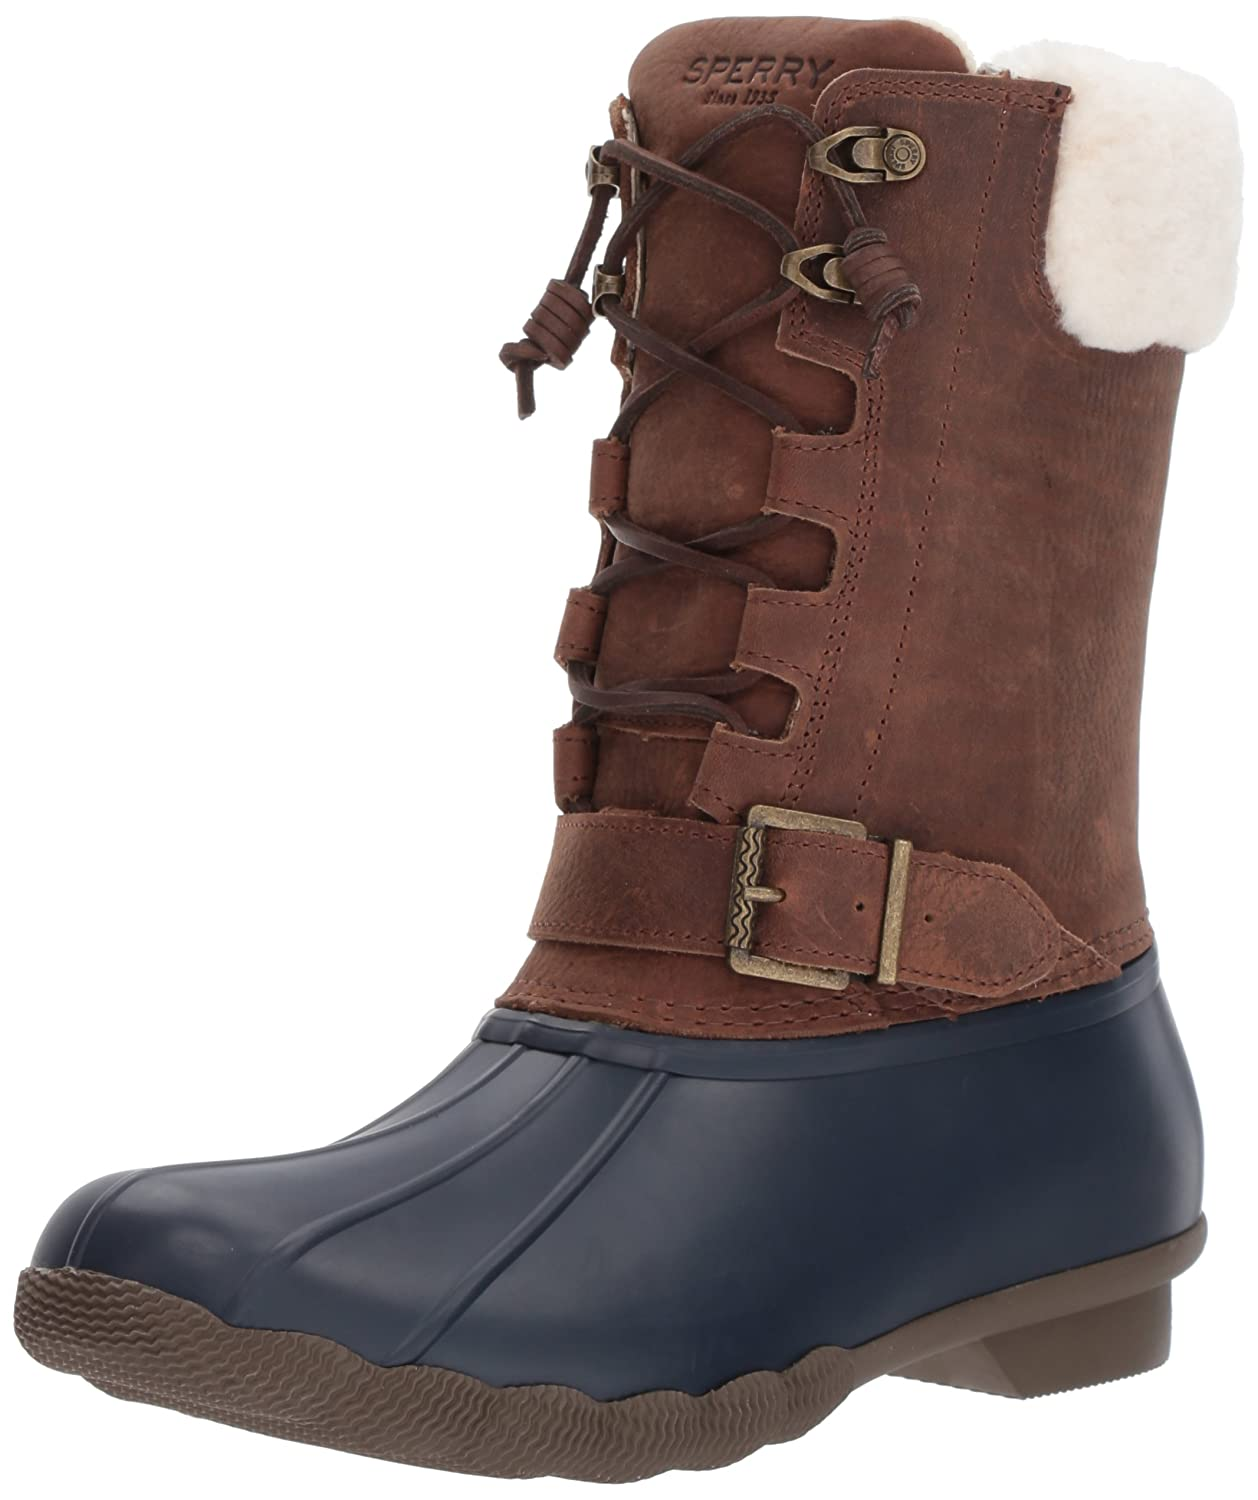 Sperry Top-Sider Women's Saltwater Misty Thinsulate Rain Boot B01NCNNDH0 9.5 B(M) US|Navy/Brown